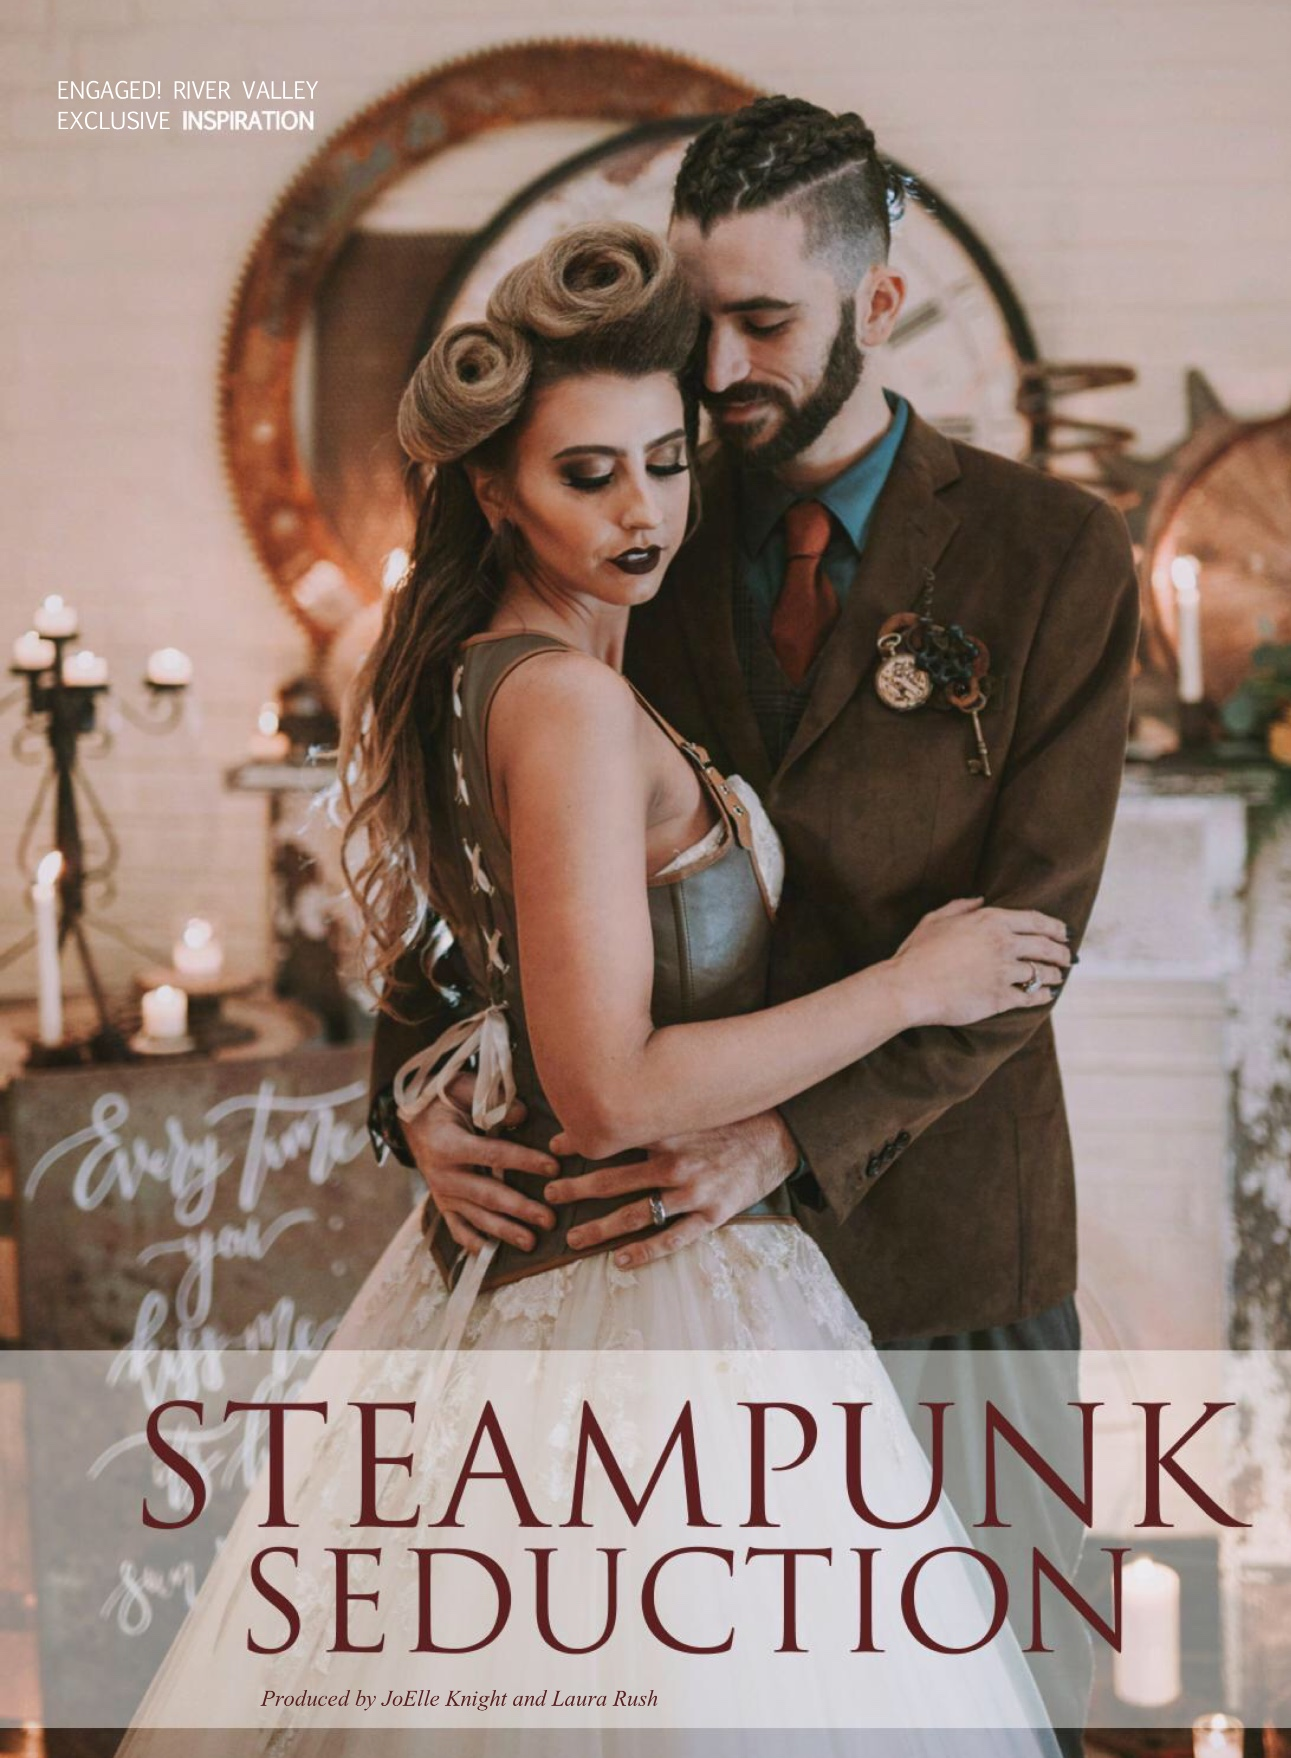 Gears, Gadgets, Keys, & Springs - This steampunk inspired shoot was so much fun to create. Photographer, Laura Rush of Esther Bloom captured the moody vibe of this shoot to perfection. See the entire article by clicking below.